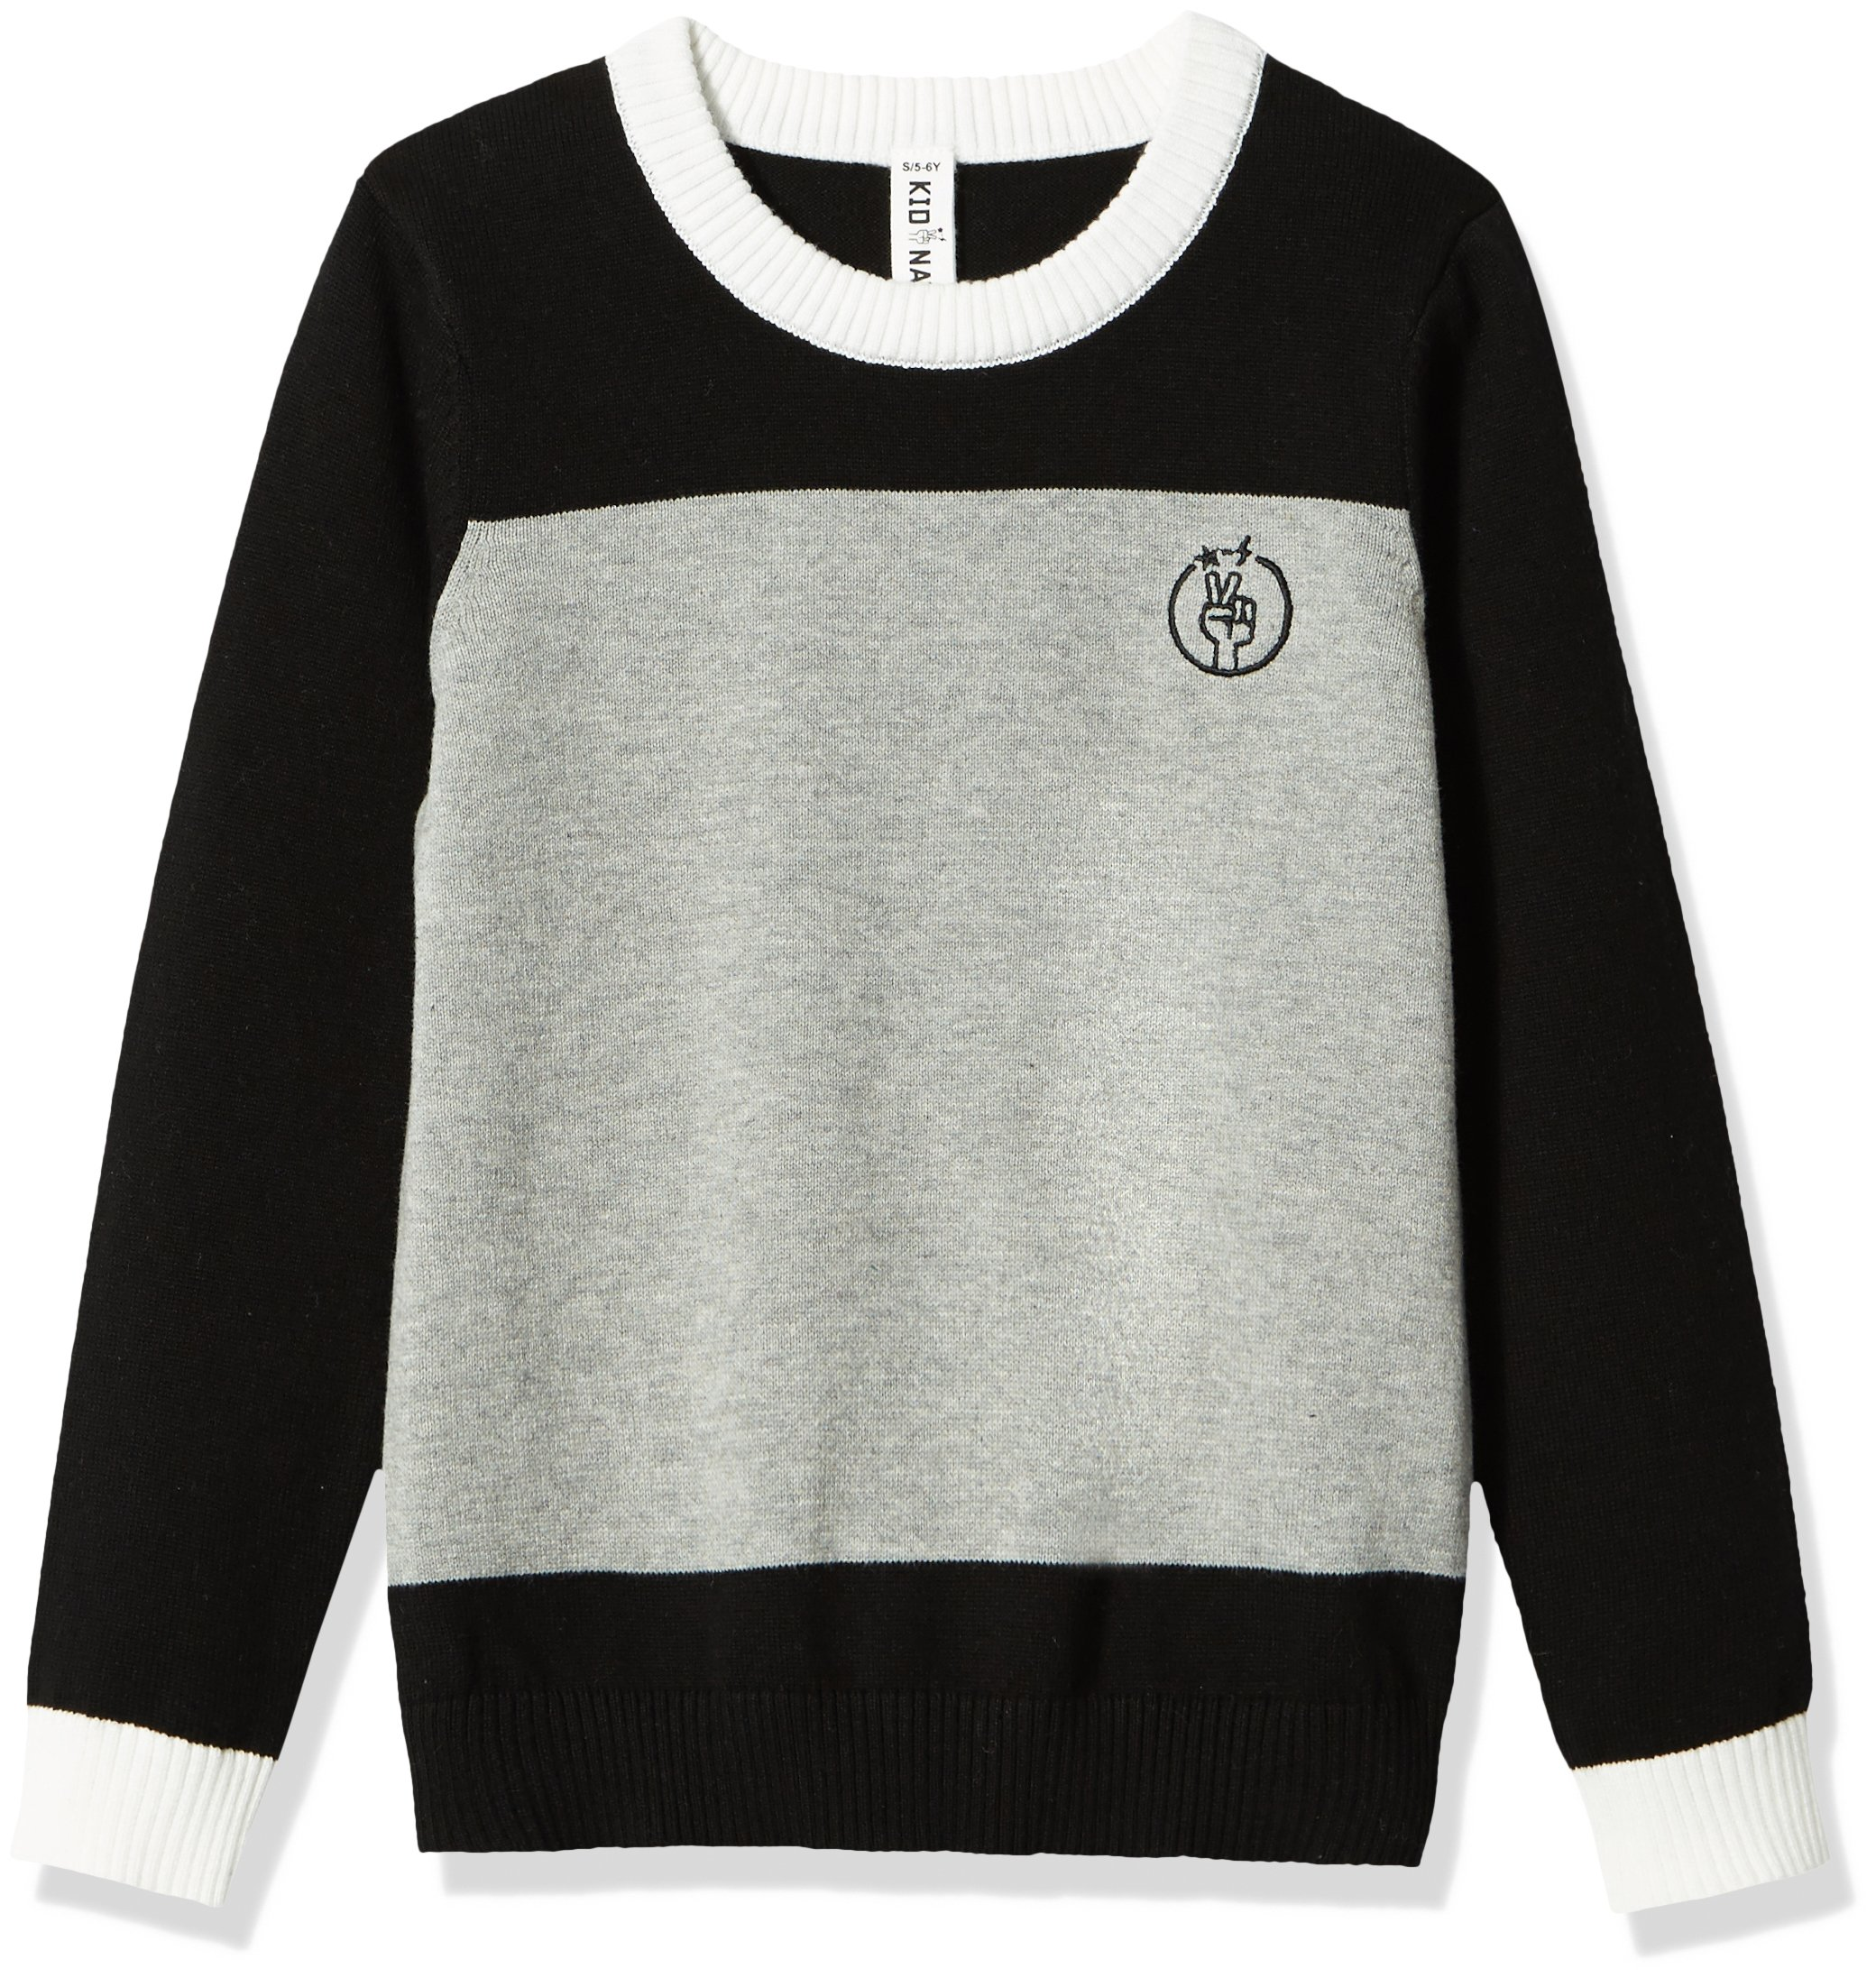 Kid Nation Kids'' Long Sleeve Color Blocked Sweater for Boys or Girls L Black